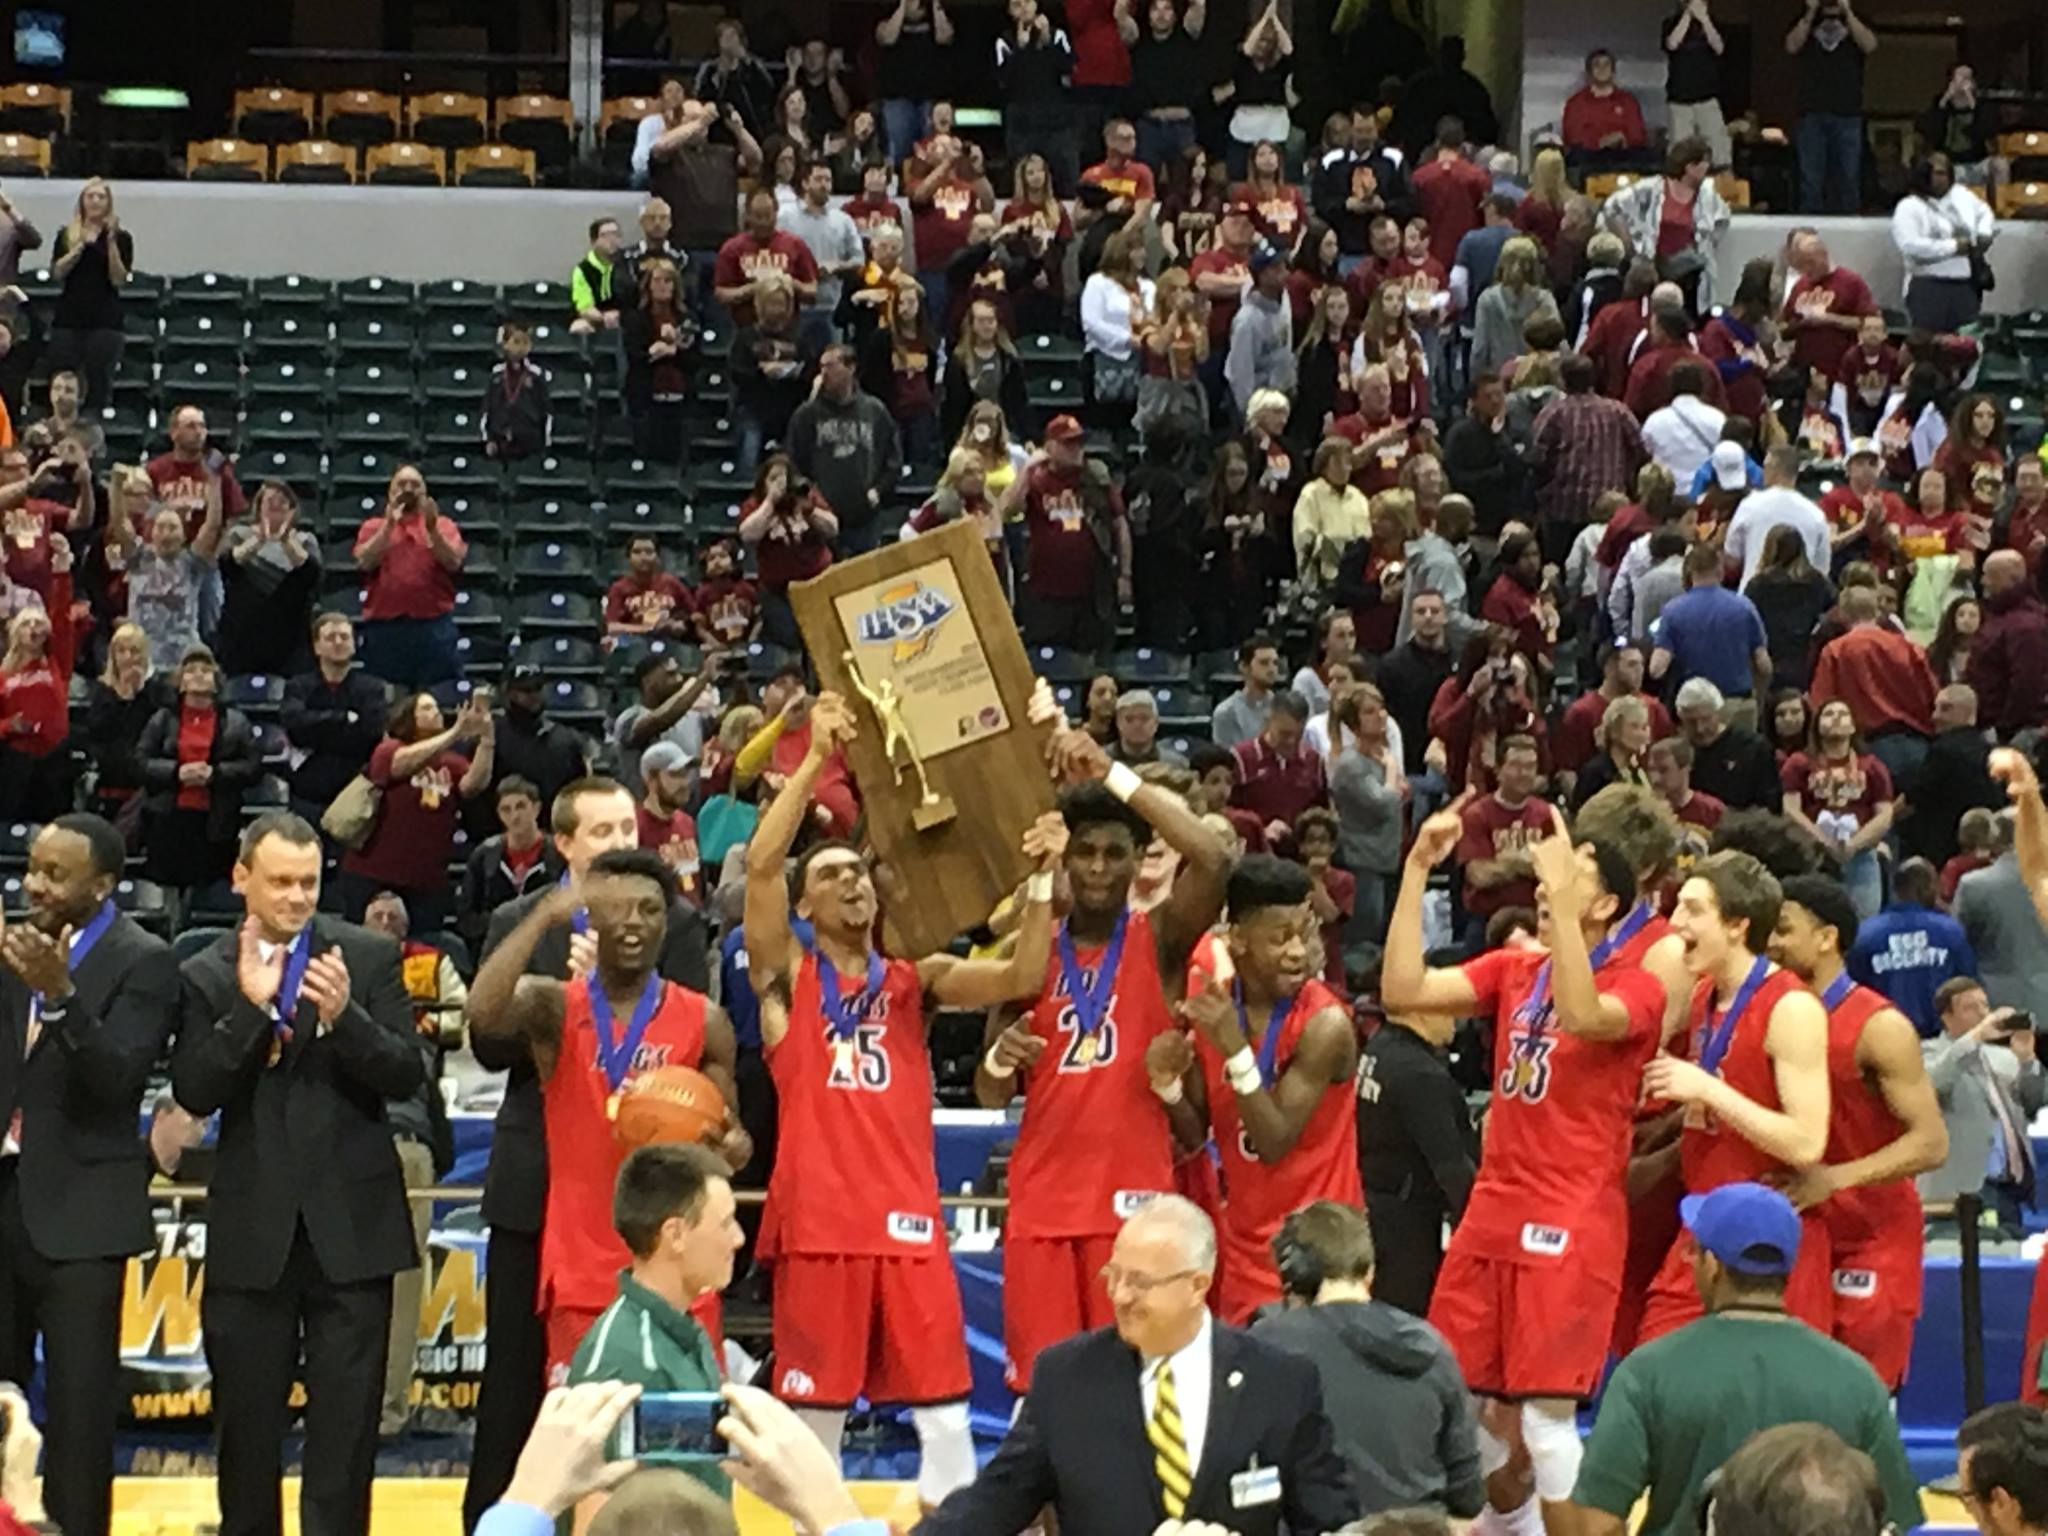 The Bulldogs hold up their first state championship since 1973.